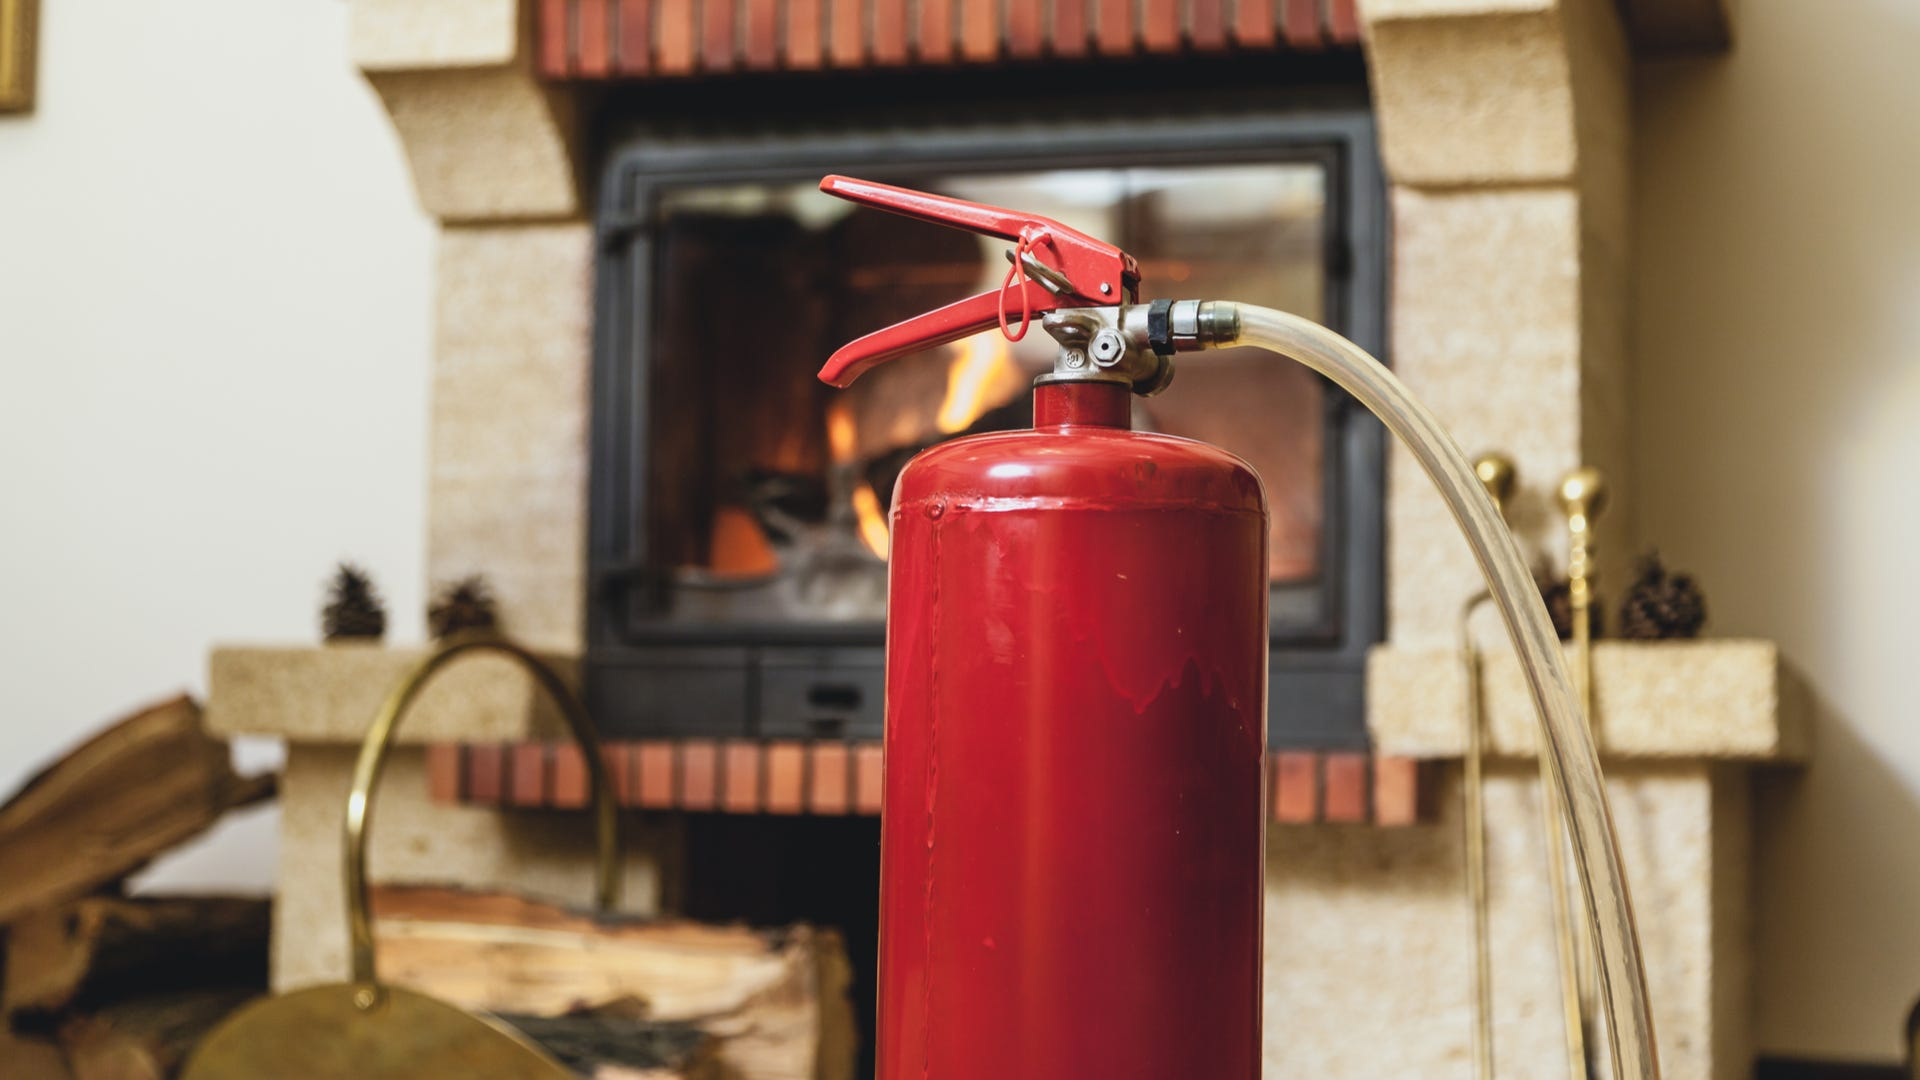 A fire extinguisher stands with a fireplace in the background.